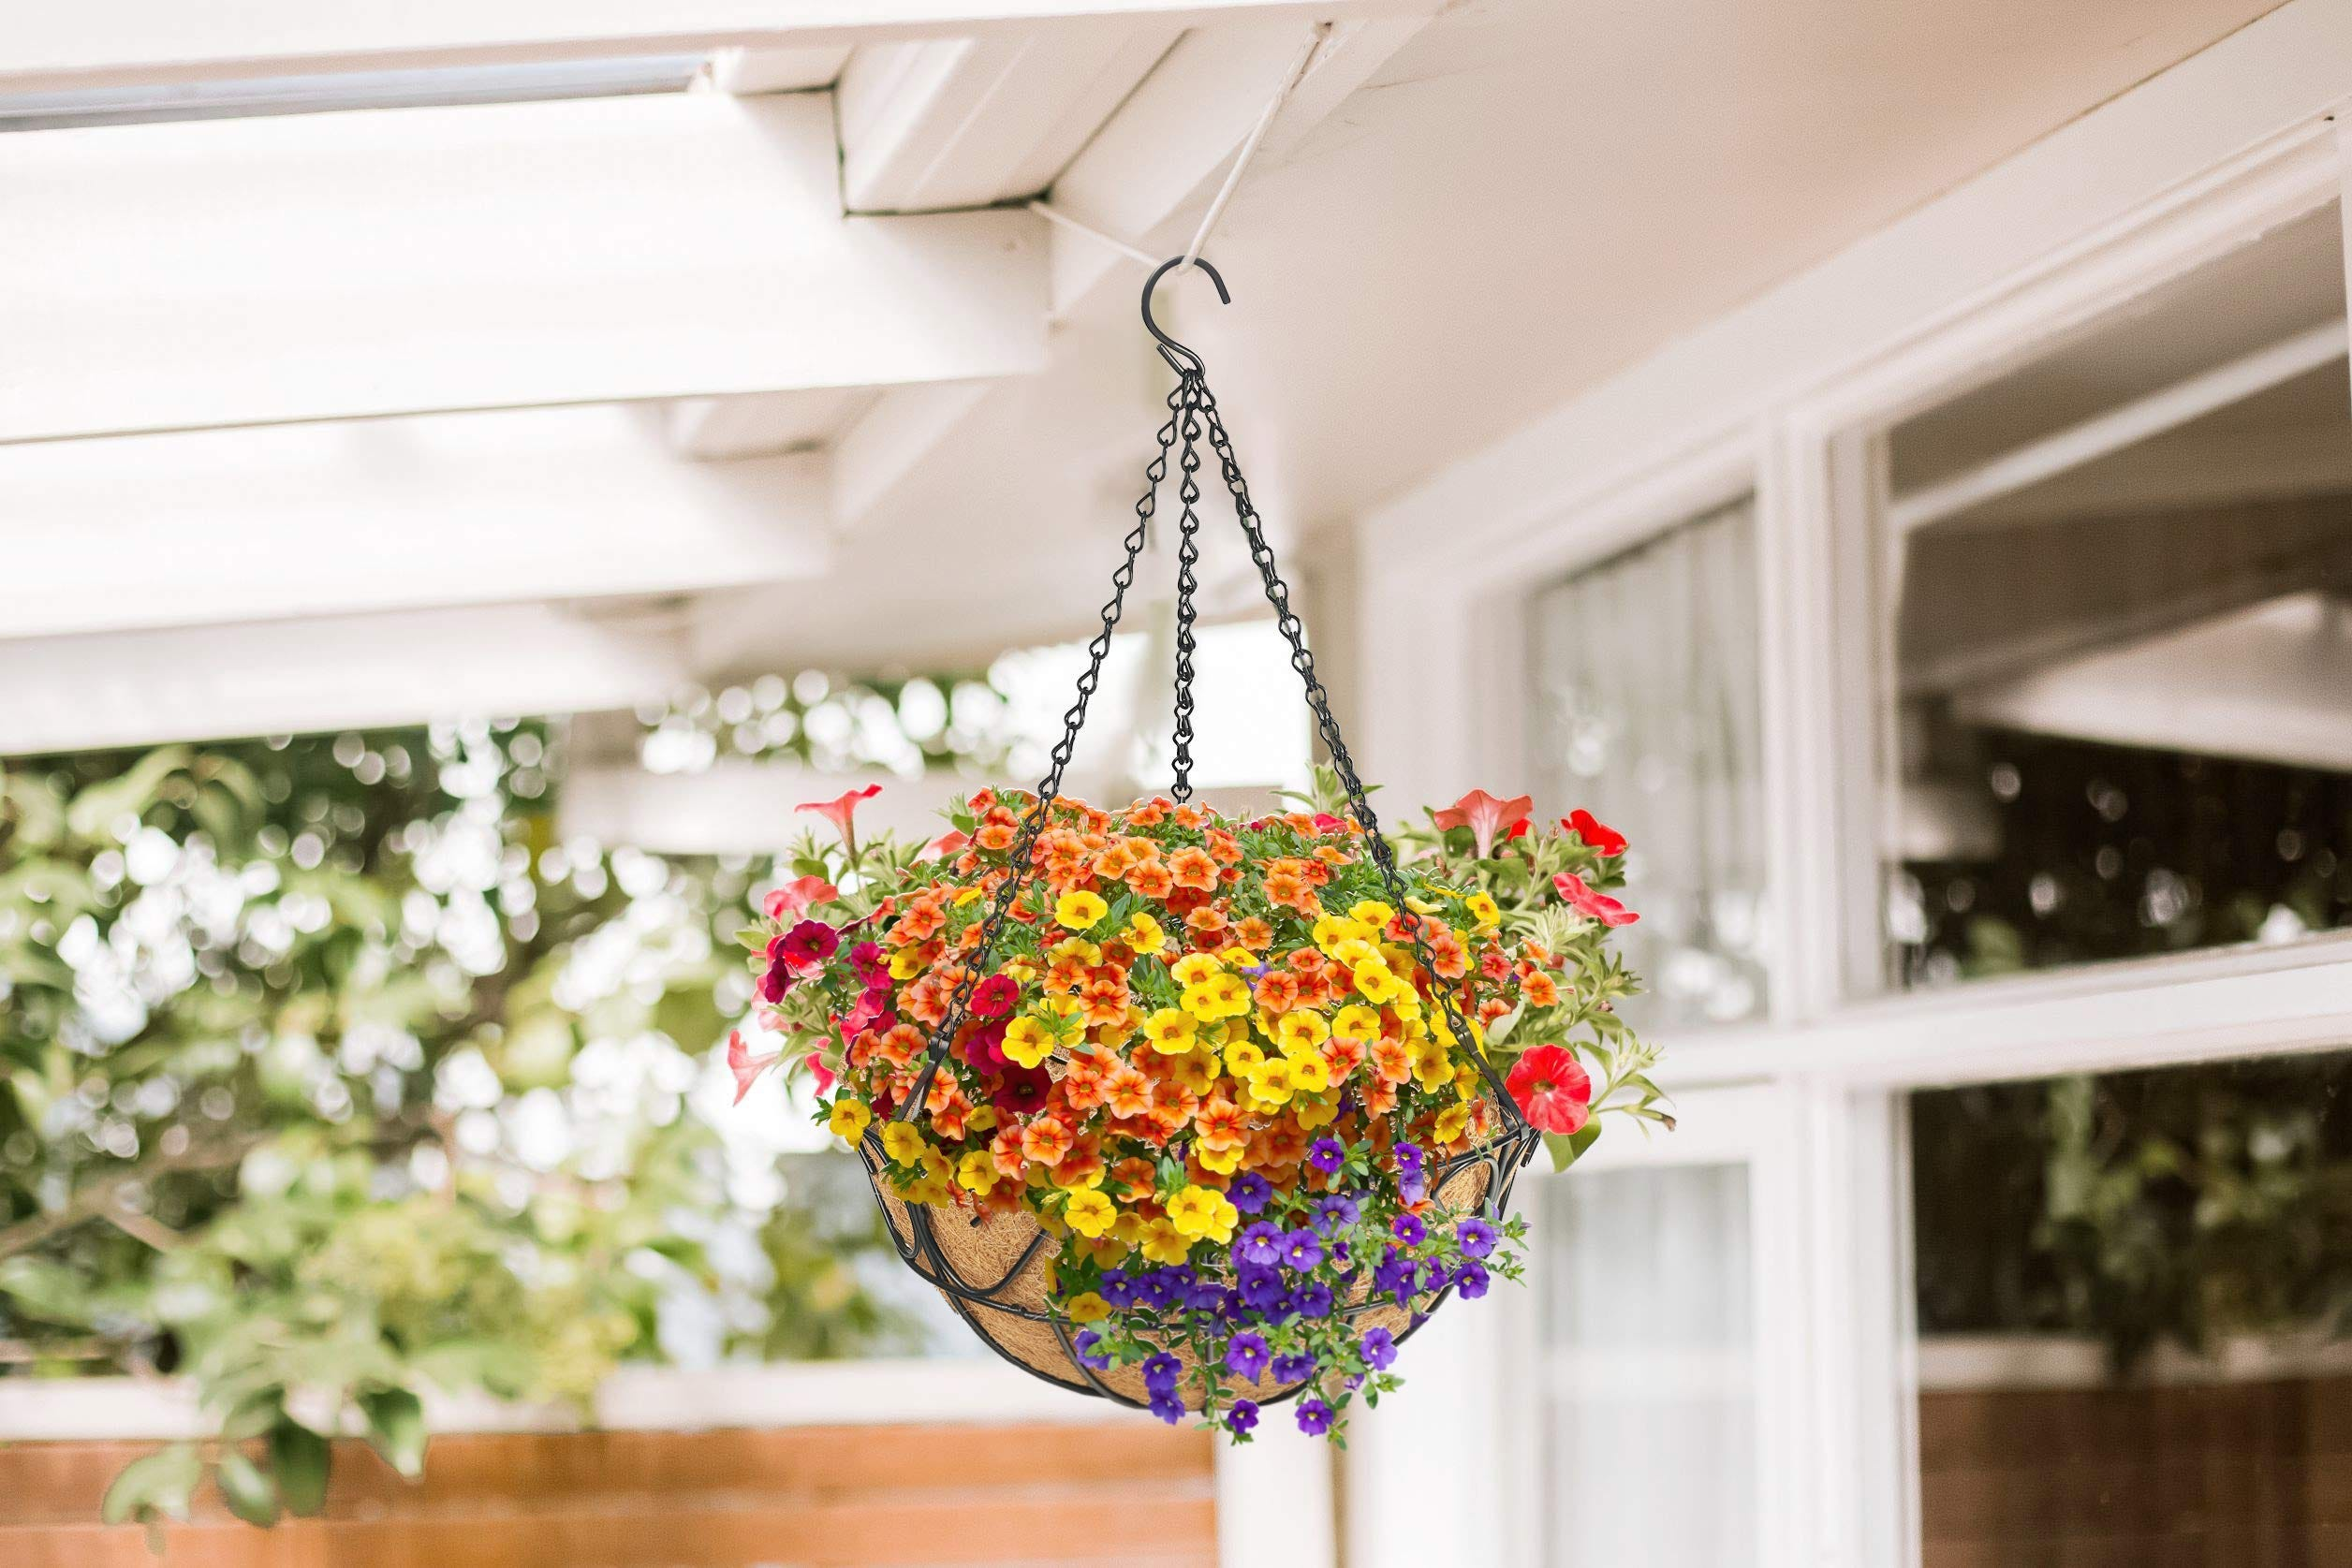 A hanging metal planter full of flowers on a porch.